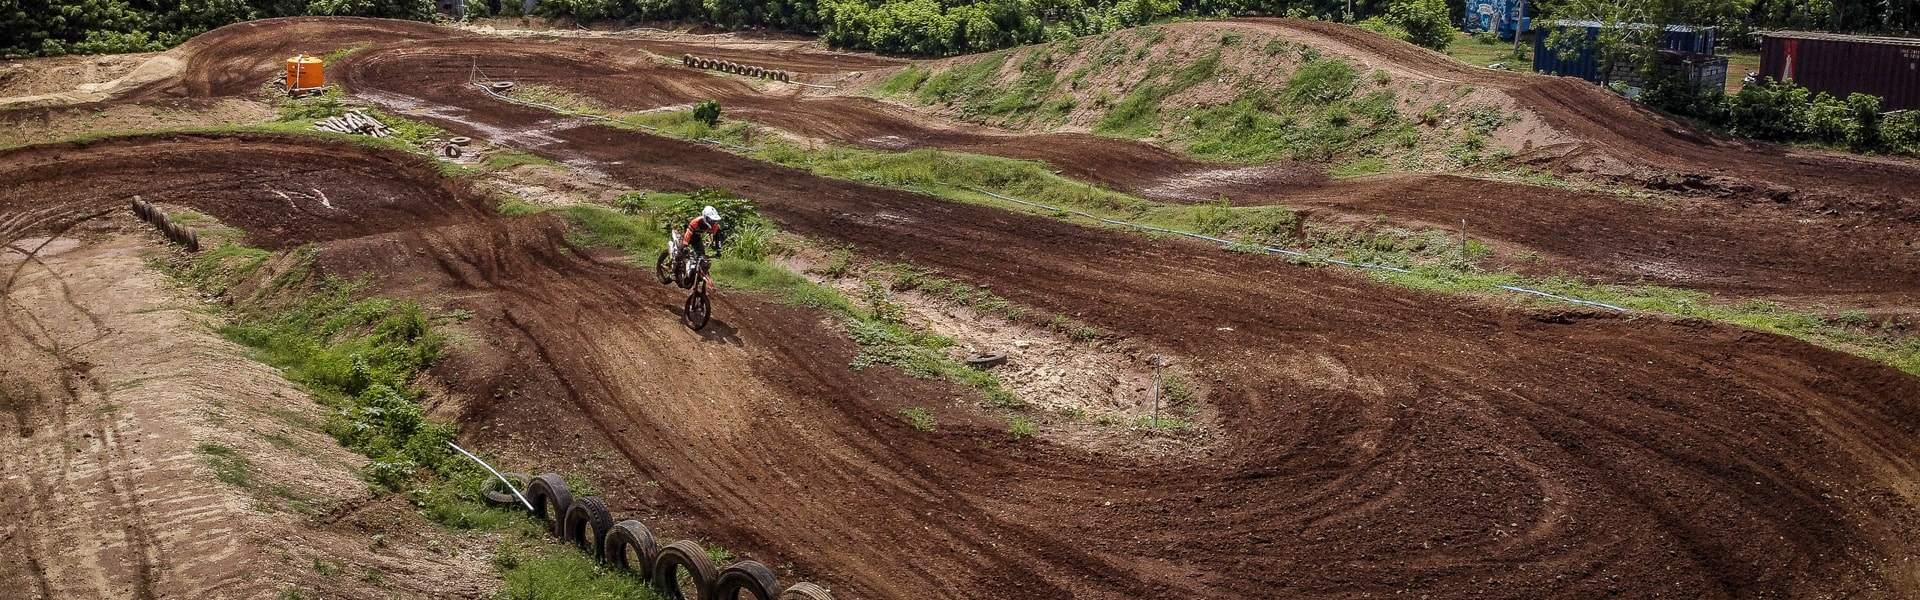 Bali_Dirt_Bikes_Home_Slider_Trails_Bali-Dirt-Bike-Park